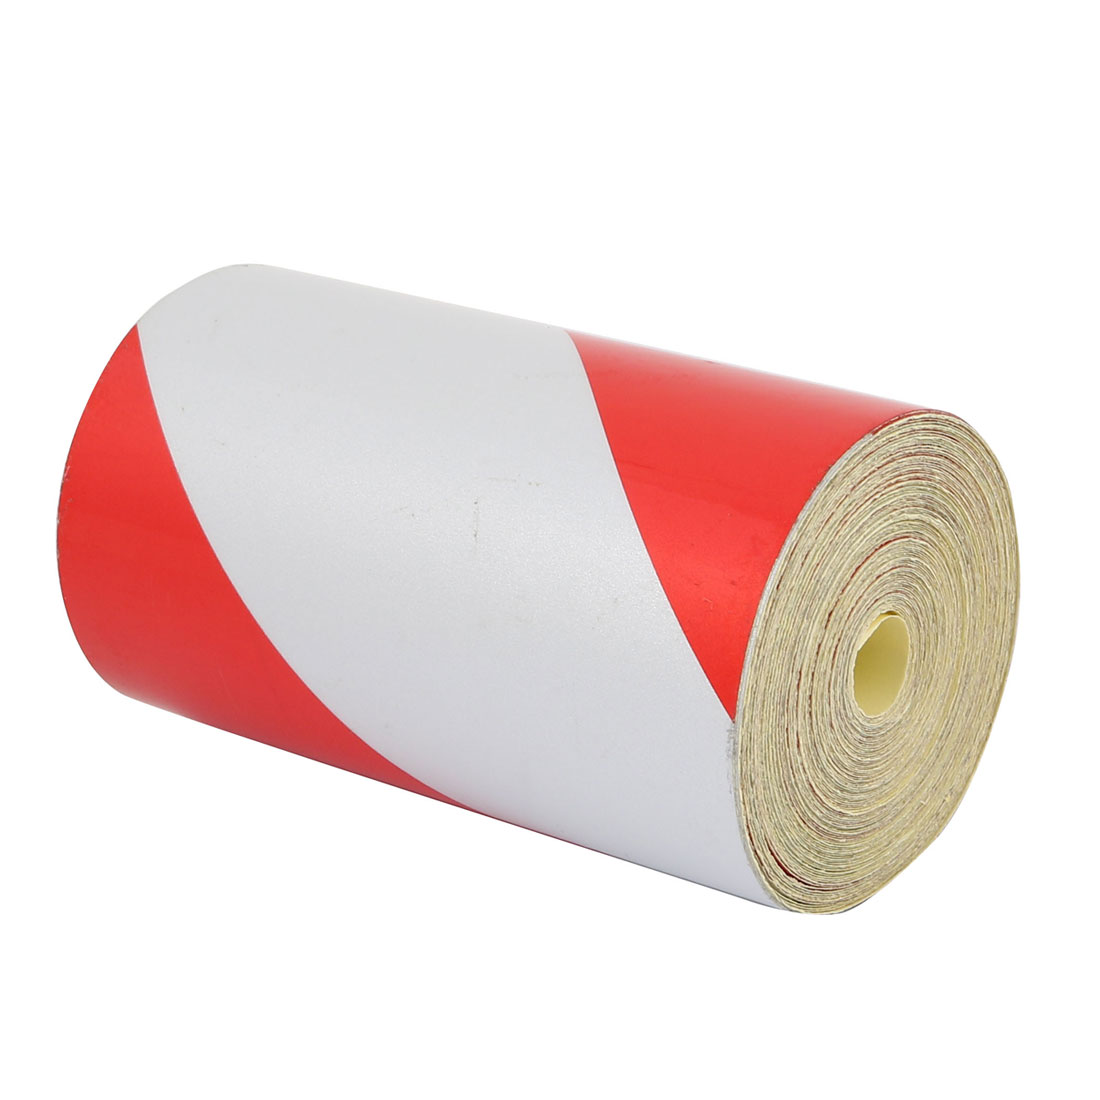 Single Side Adhesive Reflective Warning Tape Tilt 10M Long 10cm Wide Red White